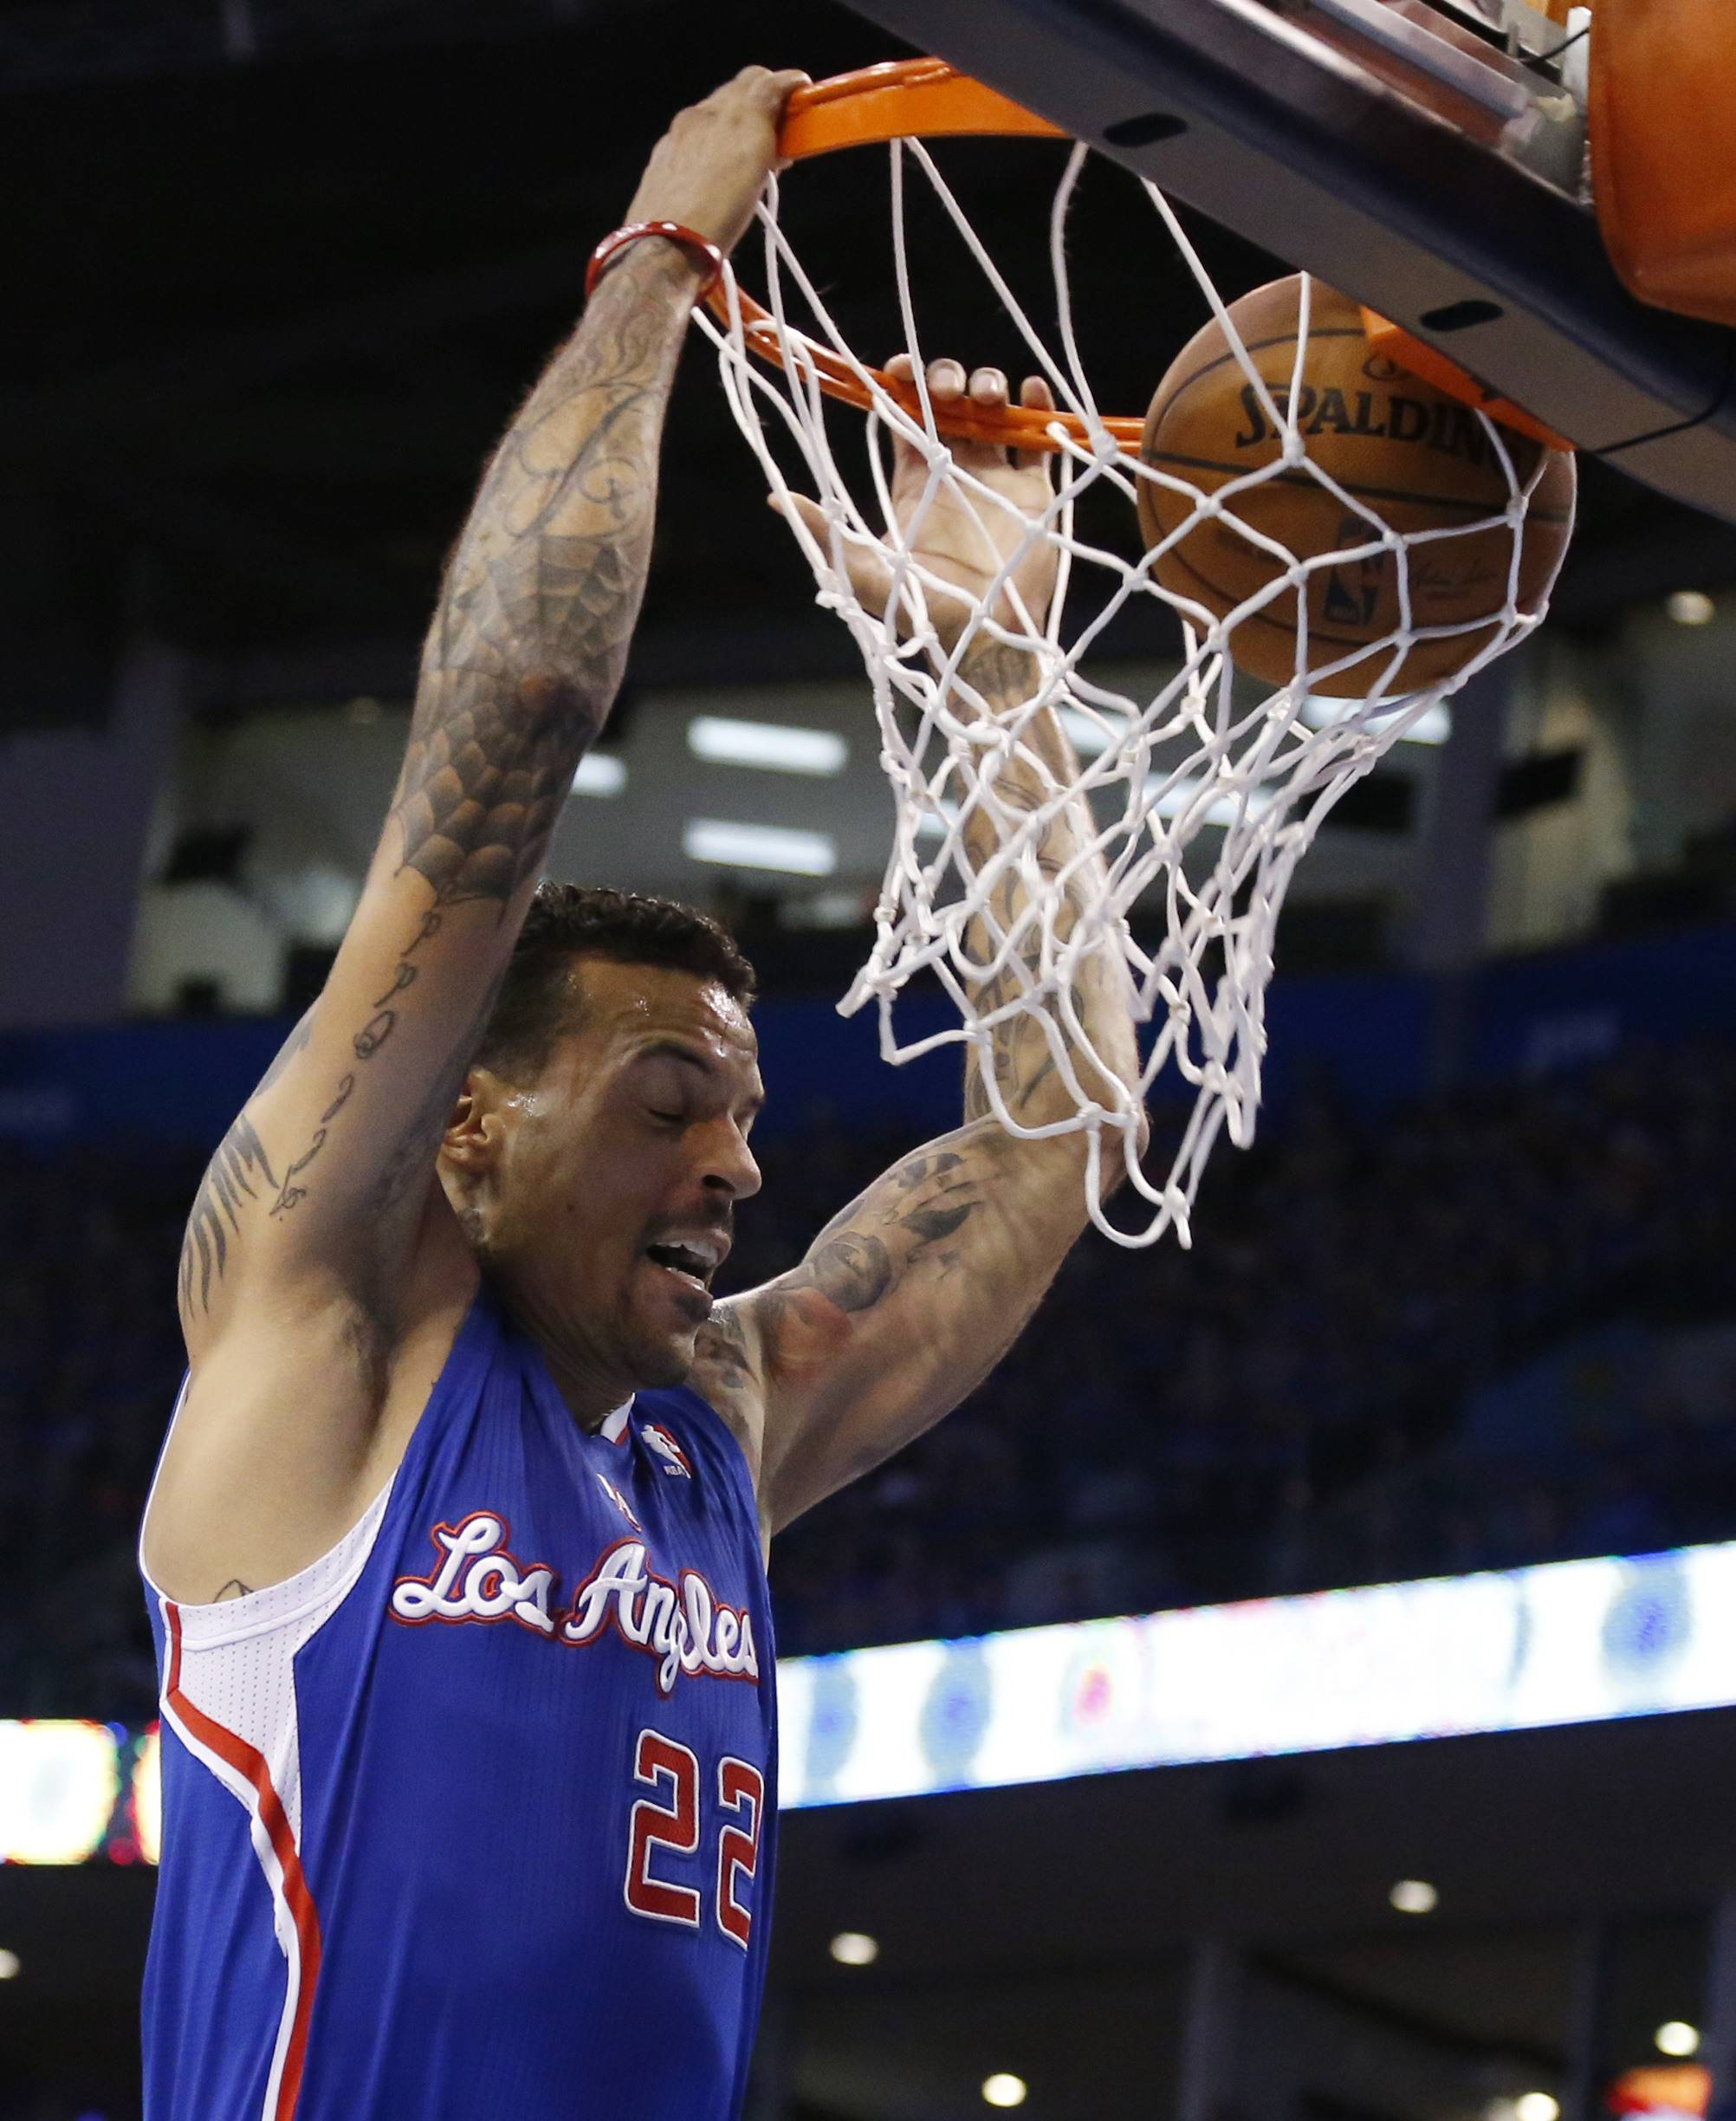 Los Angeles Clippers forward Matt Barnes dunks in the first quarter of Game 1 of the Western Conference semifinal NBA basketball playoff series against the Oklahoma City Thunder in Oklahoma City, Monday, May 5, 2014.